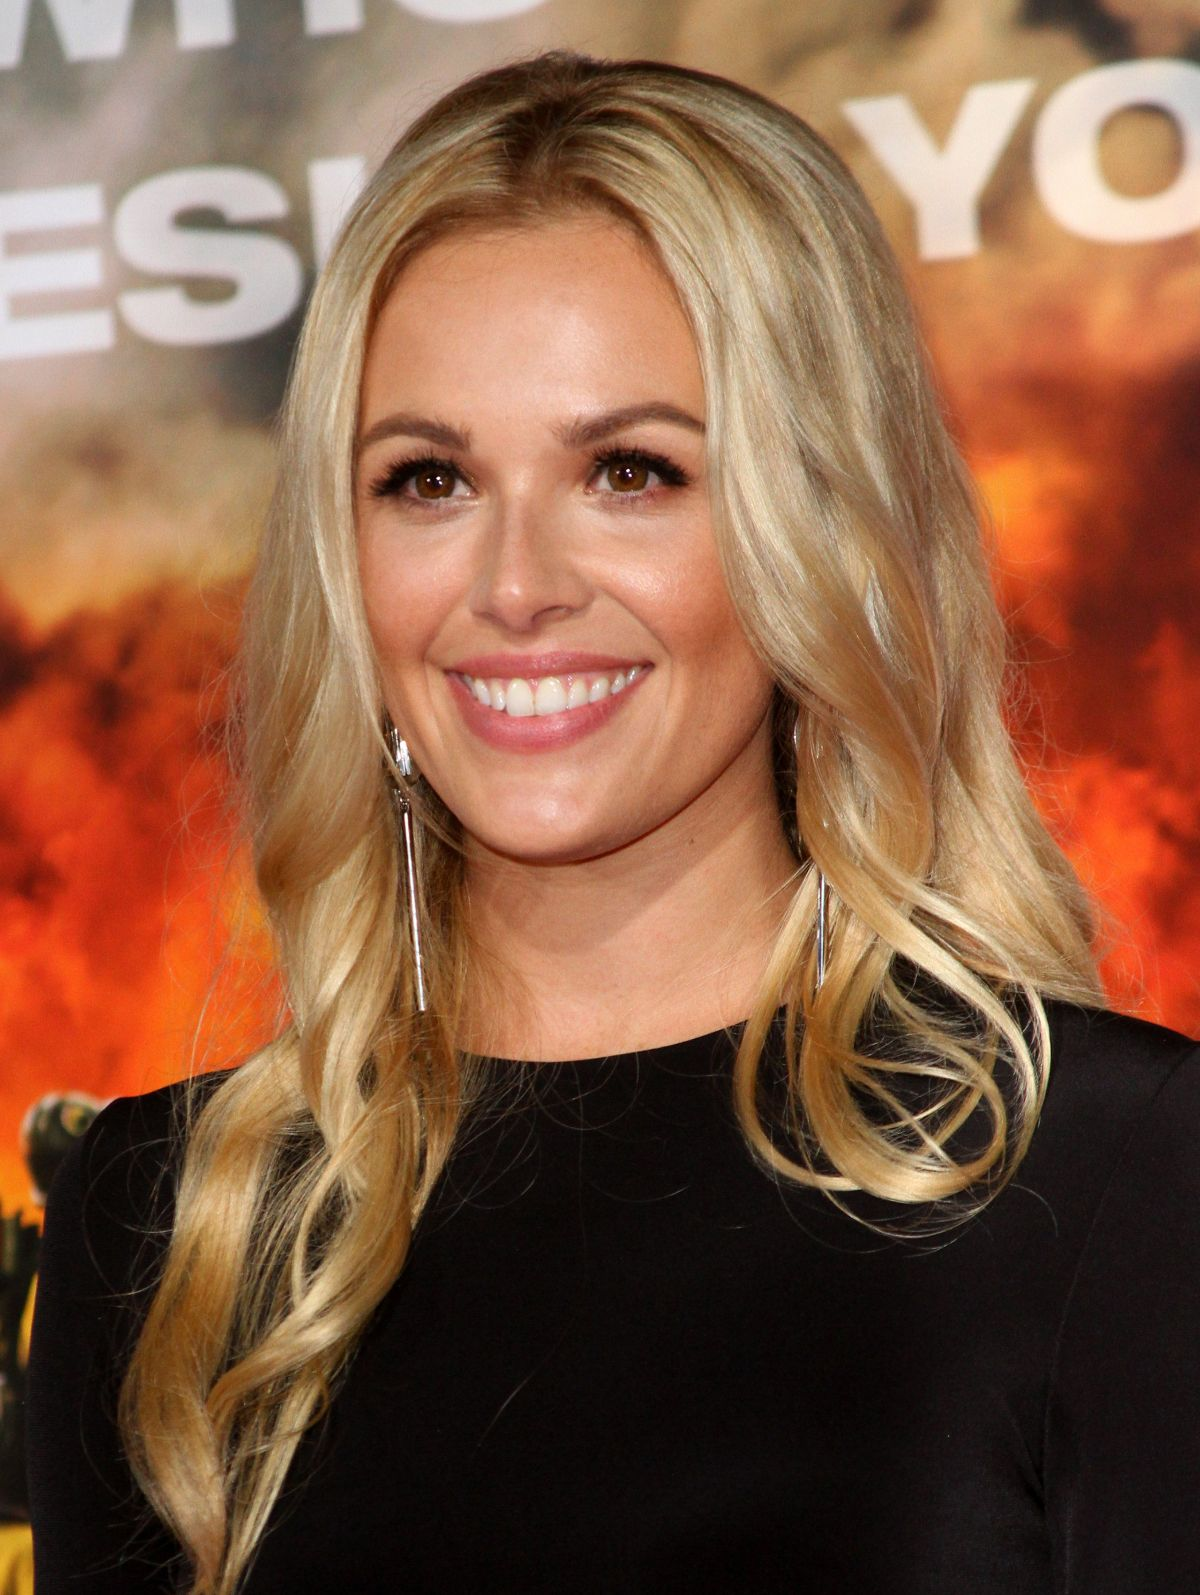 Natalie Hall At 'Only The Brave' film premiere, Los Angeles   natalie-hall-at-only-the-brave-film-premiere-los-angeles-11